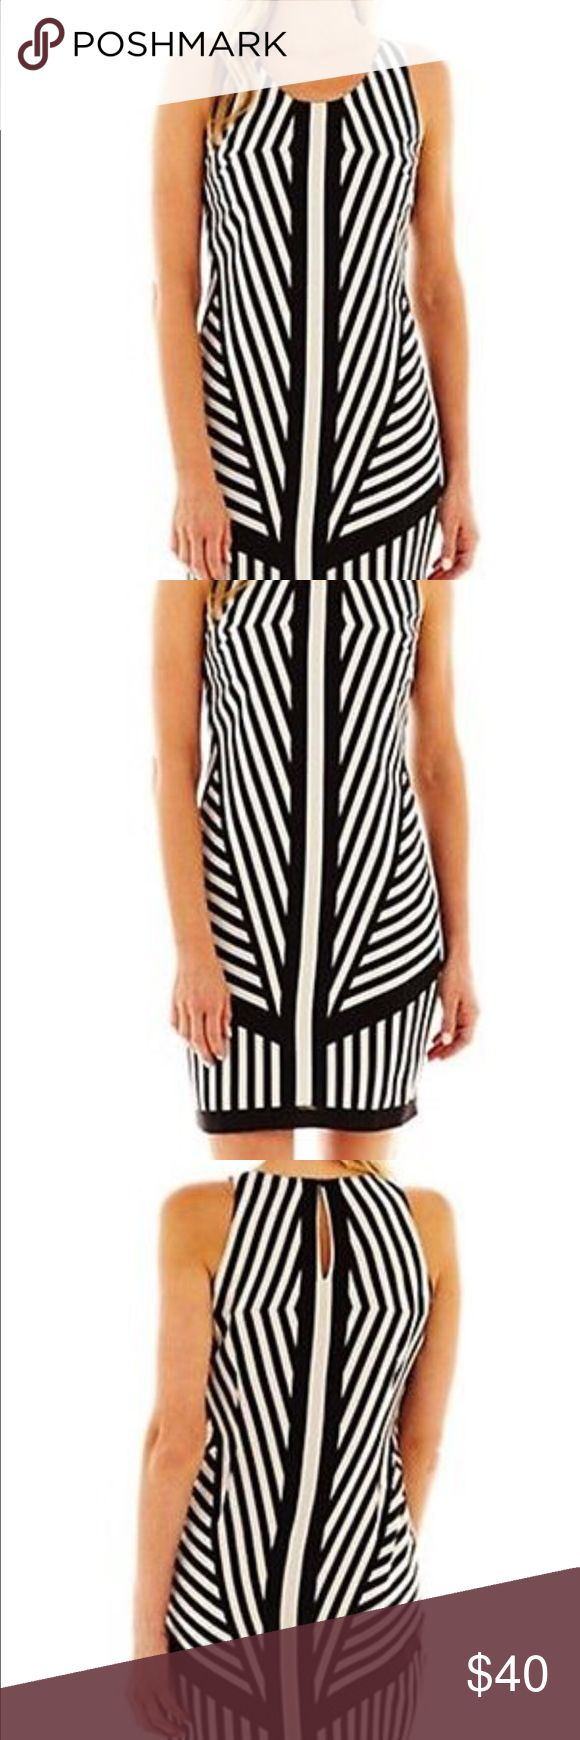 "J. Taylor Graphic Black & White Stripe Dress Stunning shift dress. Bold placed stripes to enhance your curves. Keyhole back closure, fully lined, darts at bust line and back.   100% poly  machine washable  36"" bust 34"" waist 40"" hips 37"" overall length Dresses"